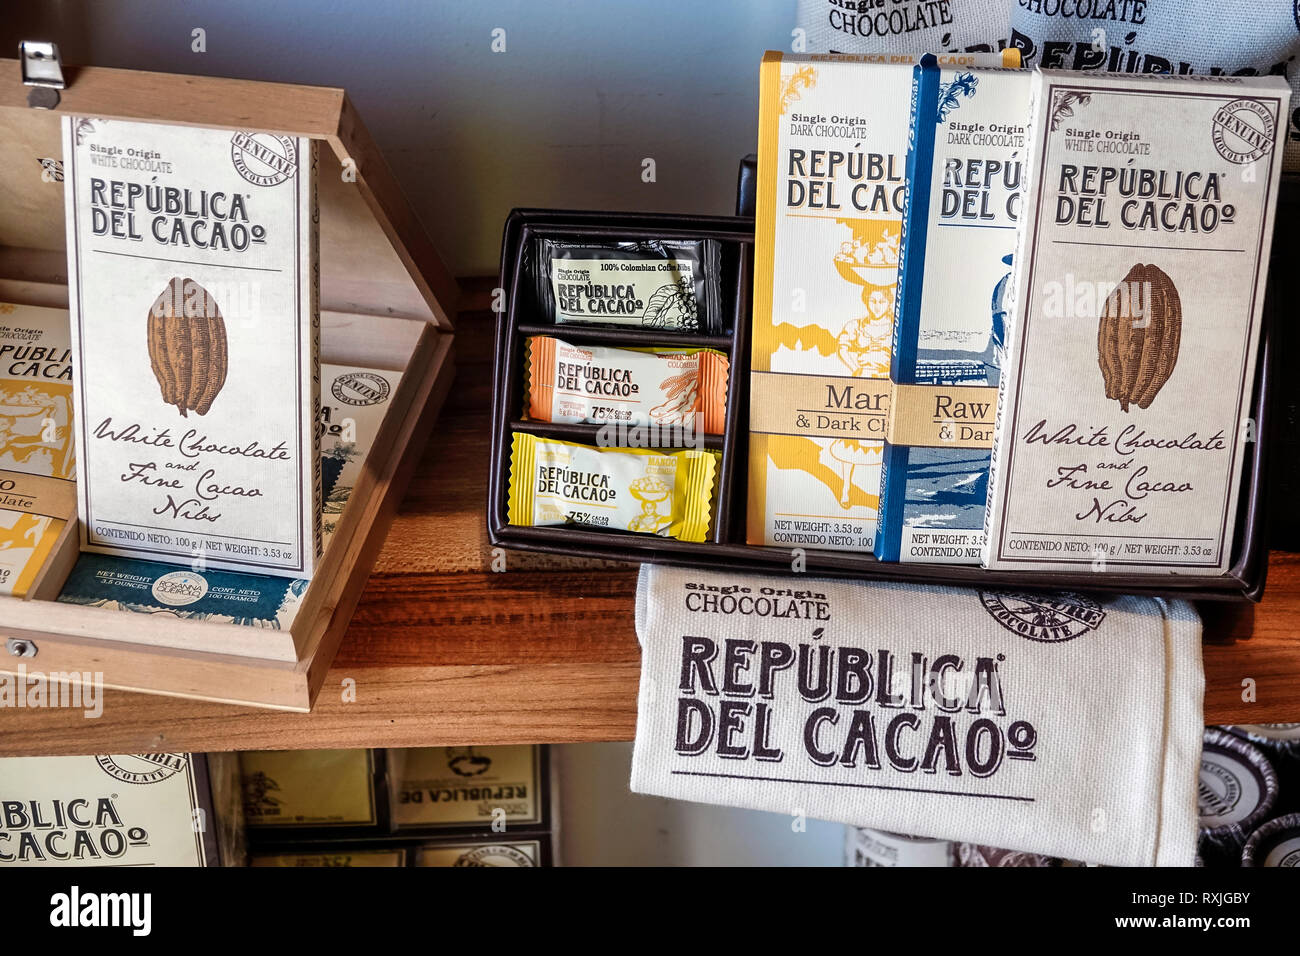 Cartagena Colombia Old Walled City Center centre Centro Republica del Cacao store shopping display sale domestic product sustainable cocoa artisanal f - Stock Image